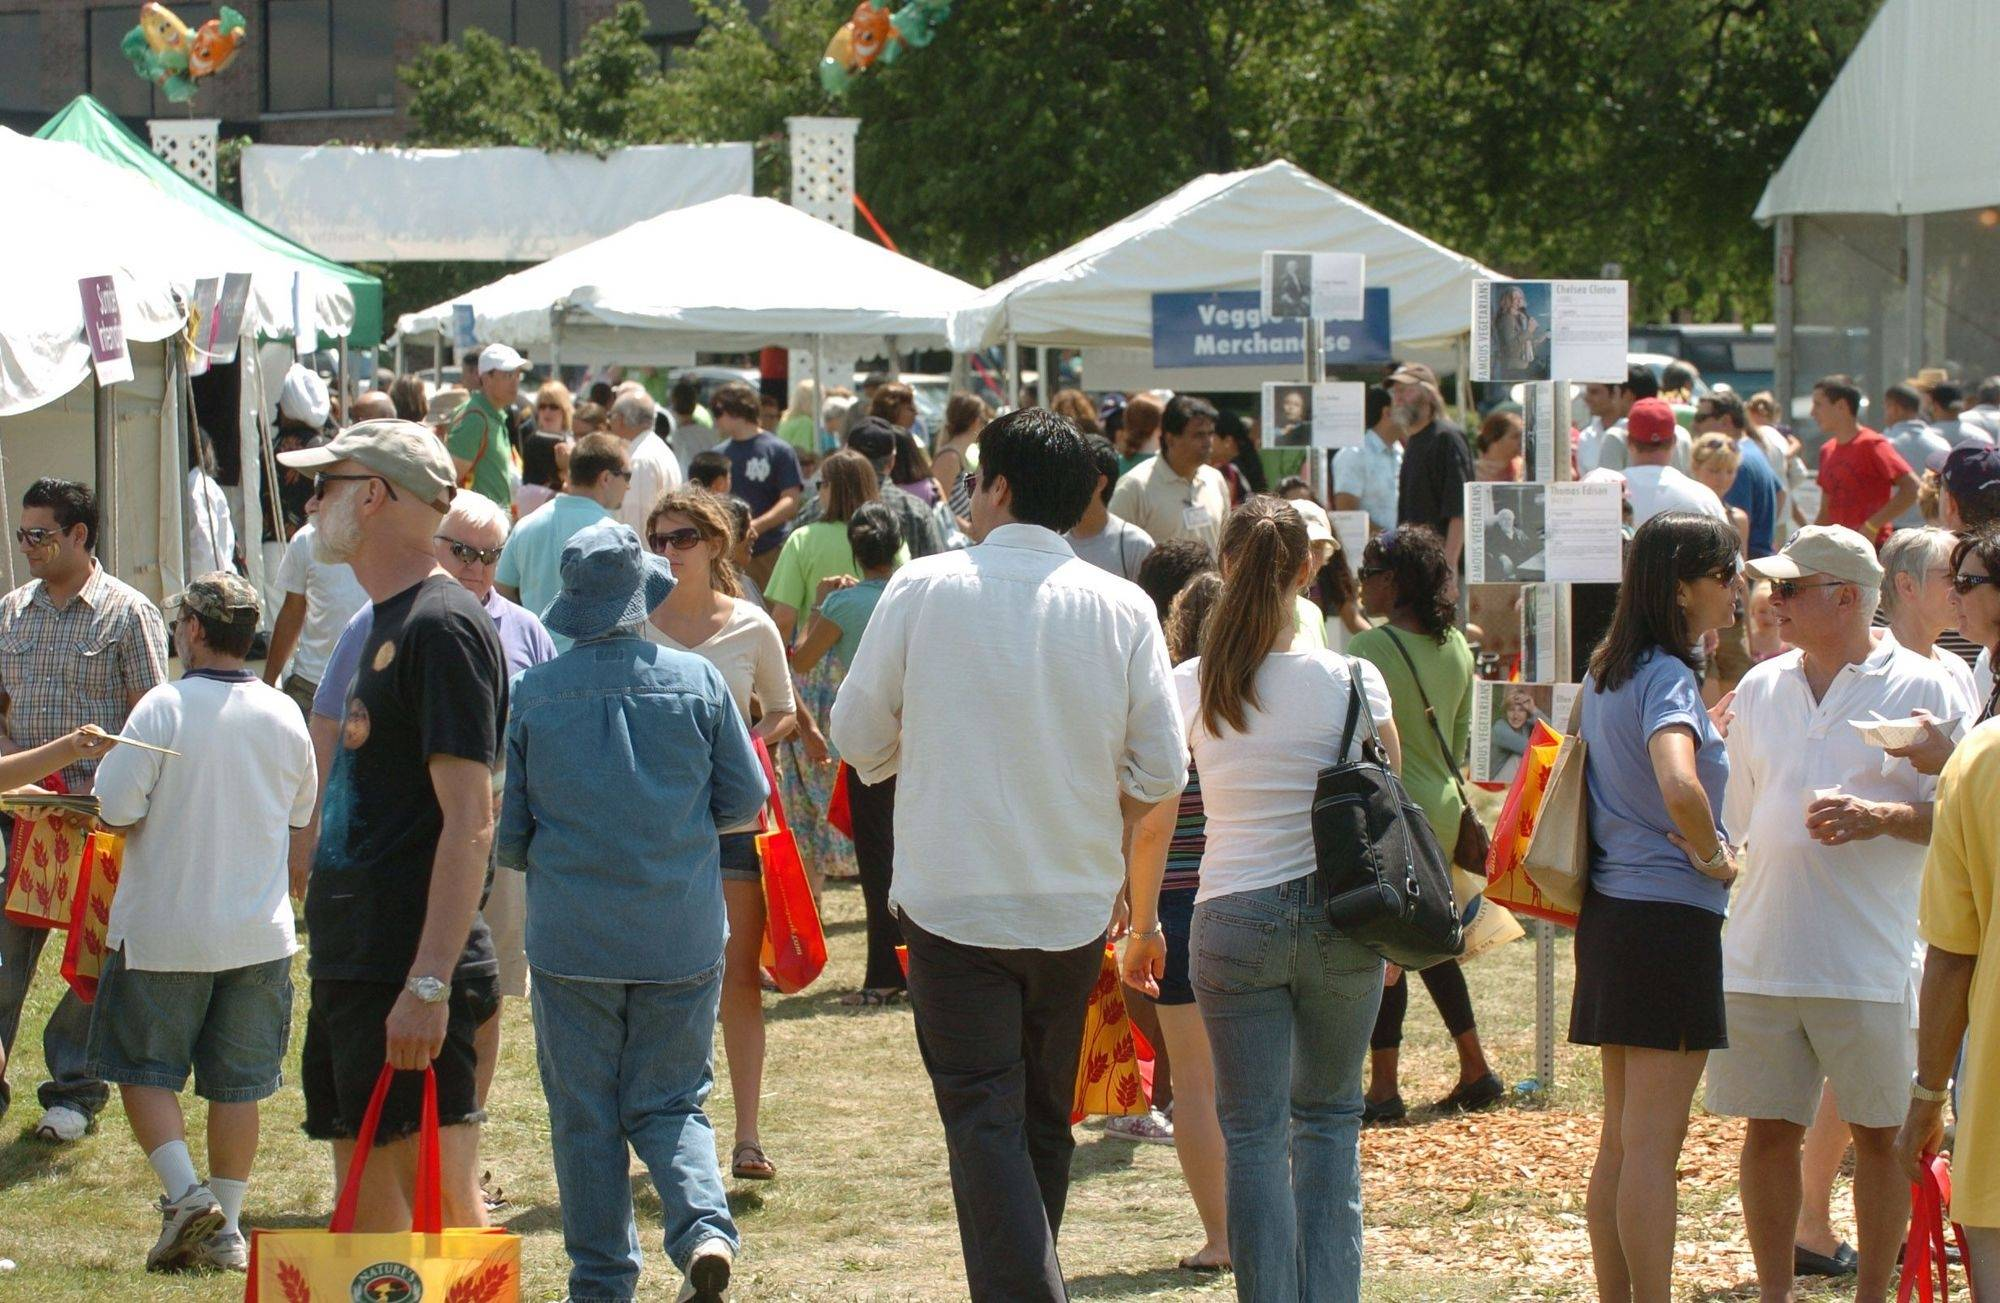 Naperville Veggie Fest heals with food, fun, music